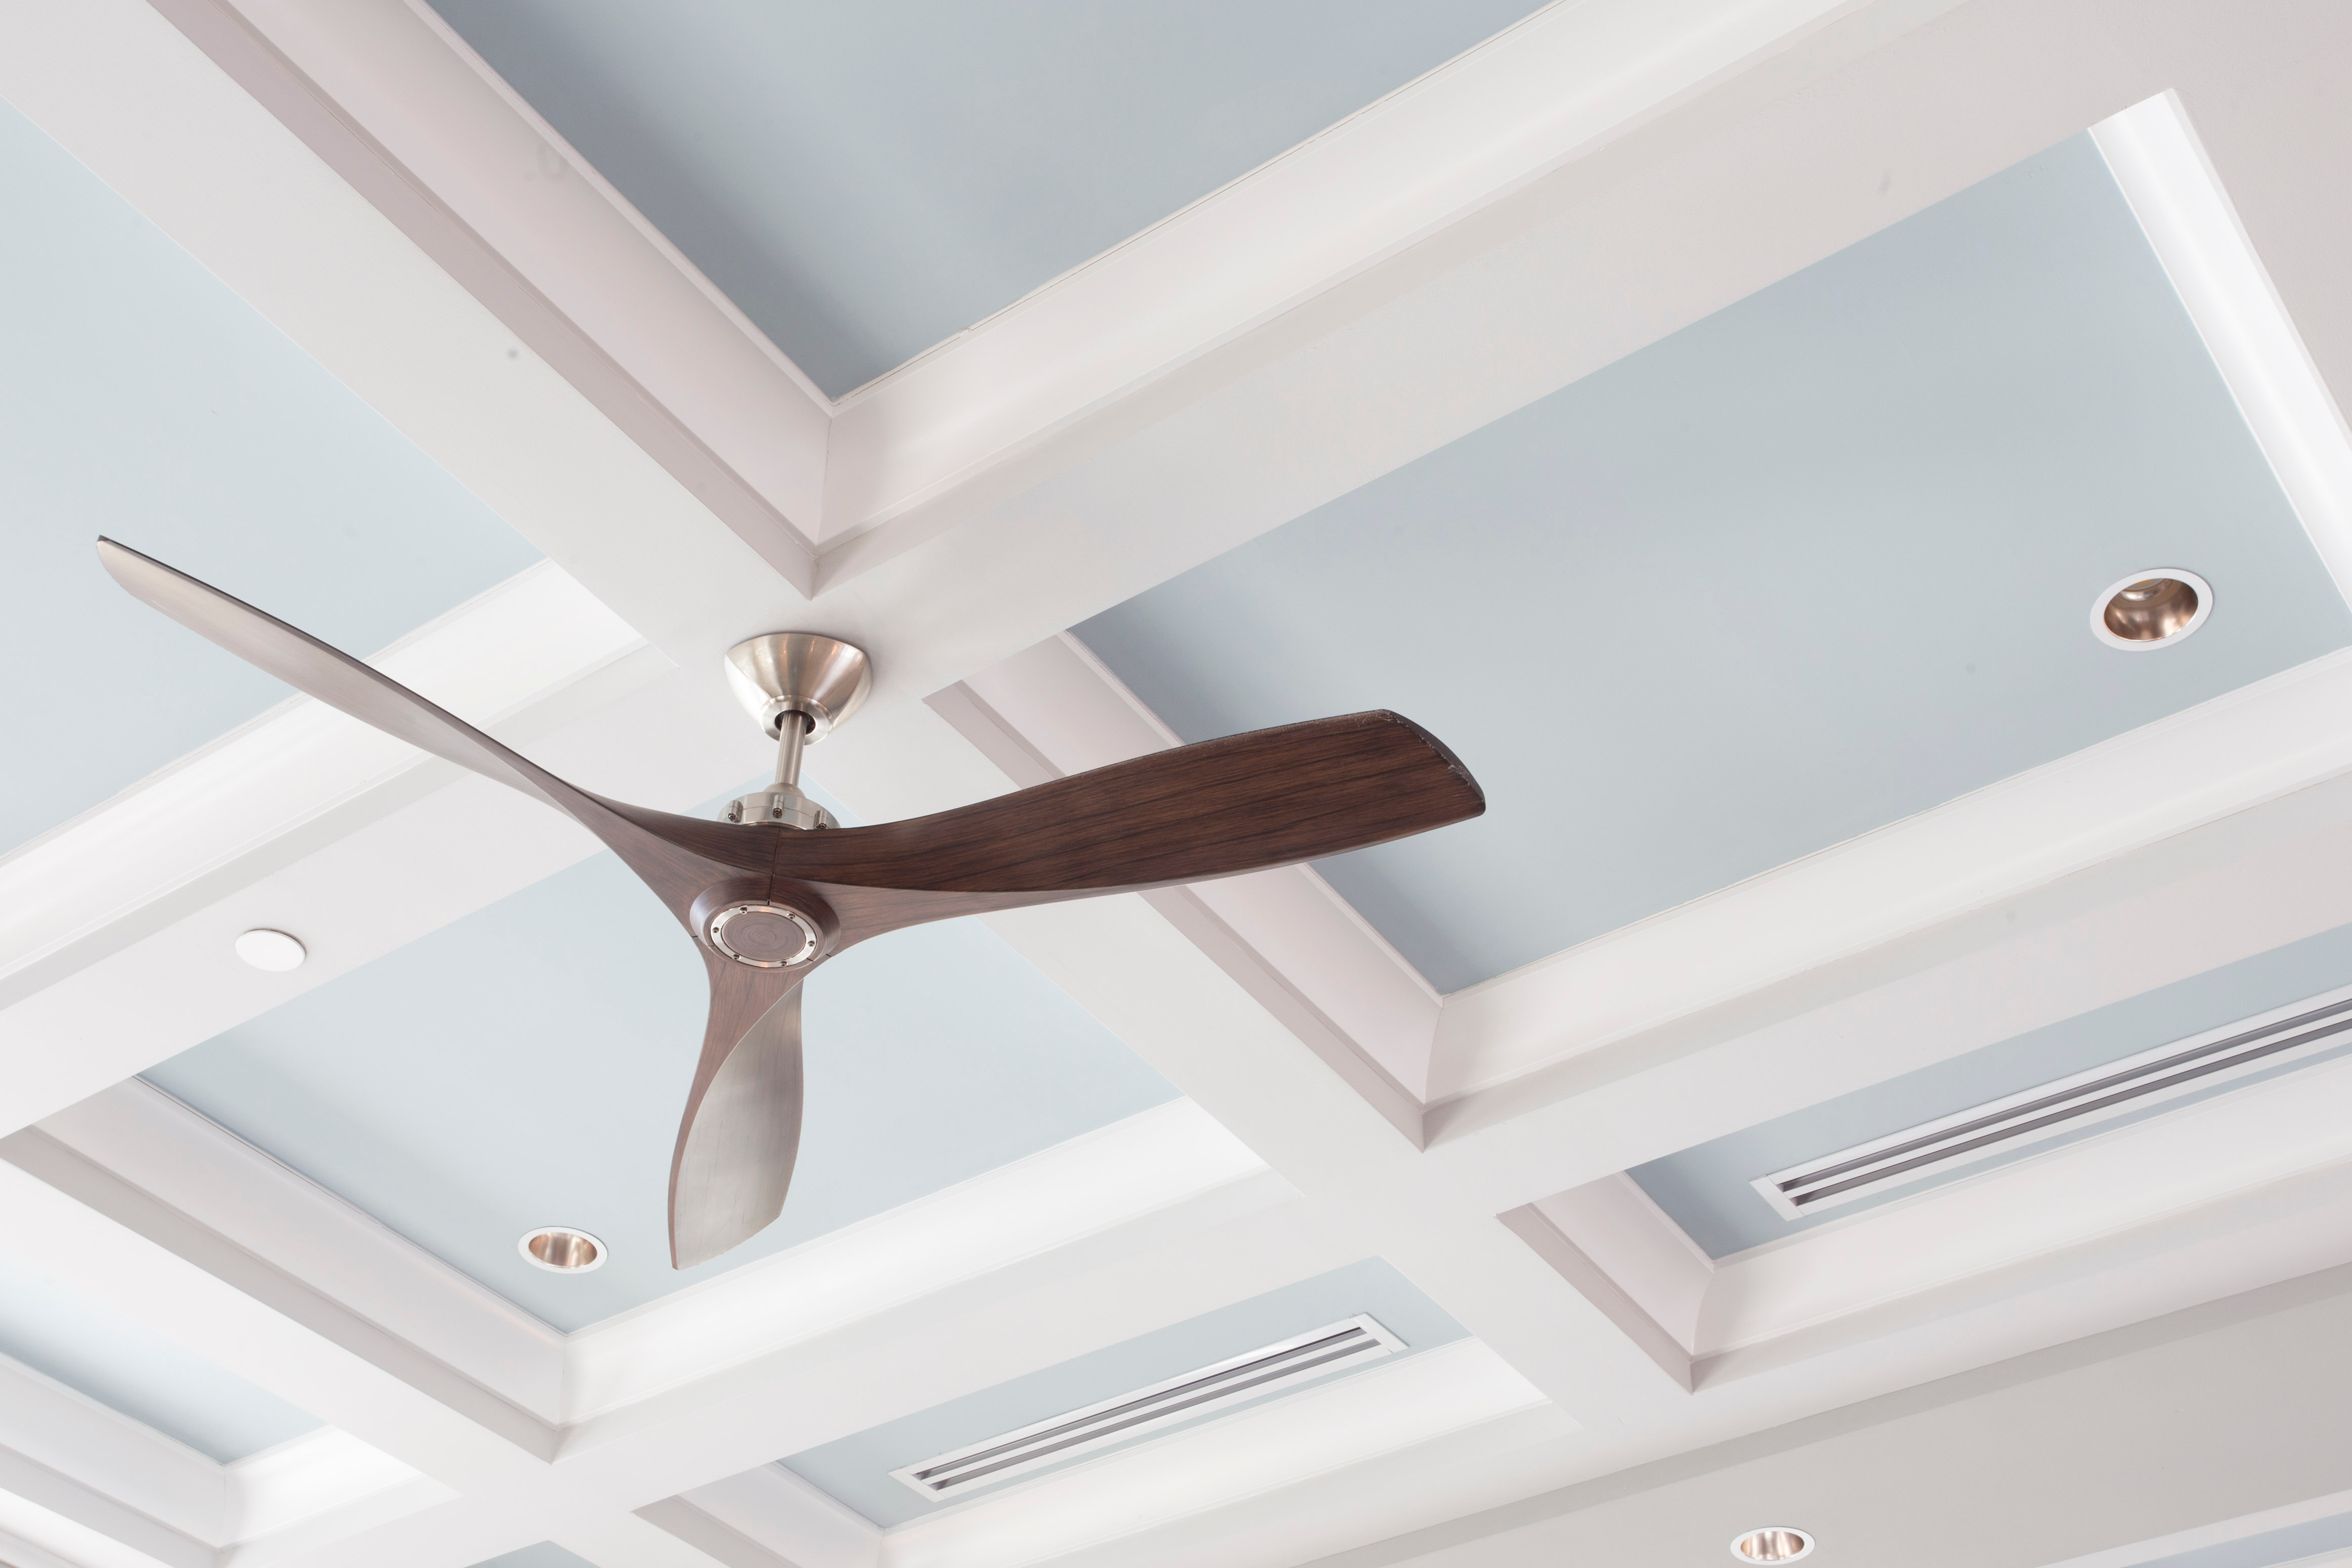 A Large Interior Fan on a Blue Coffered